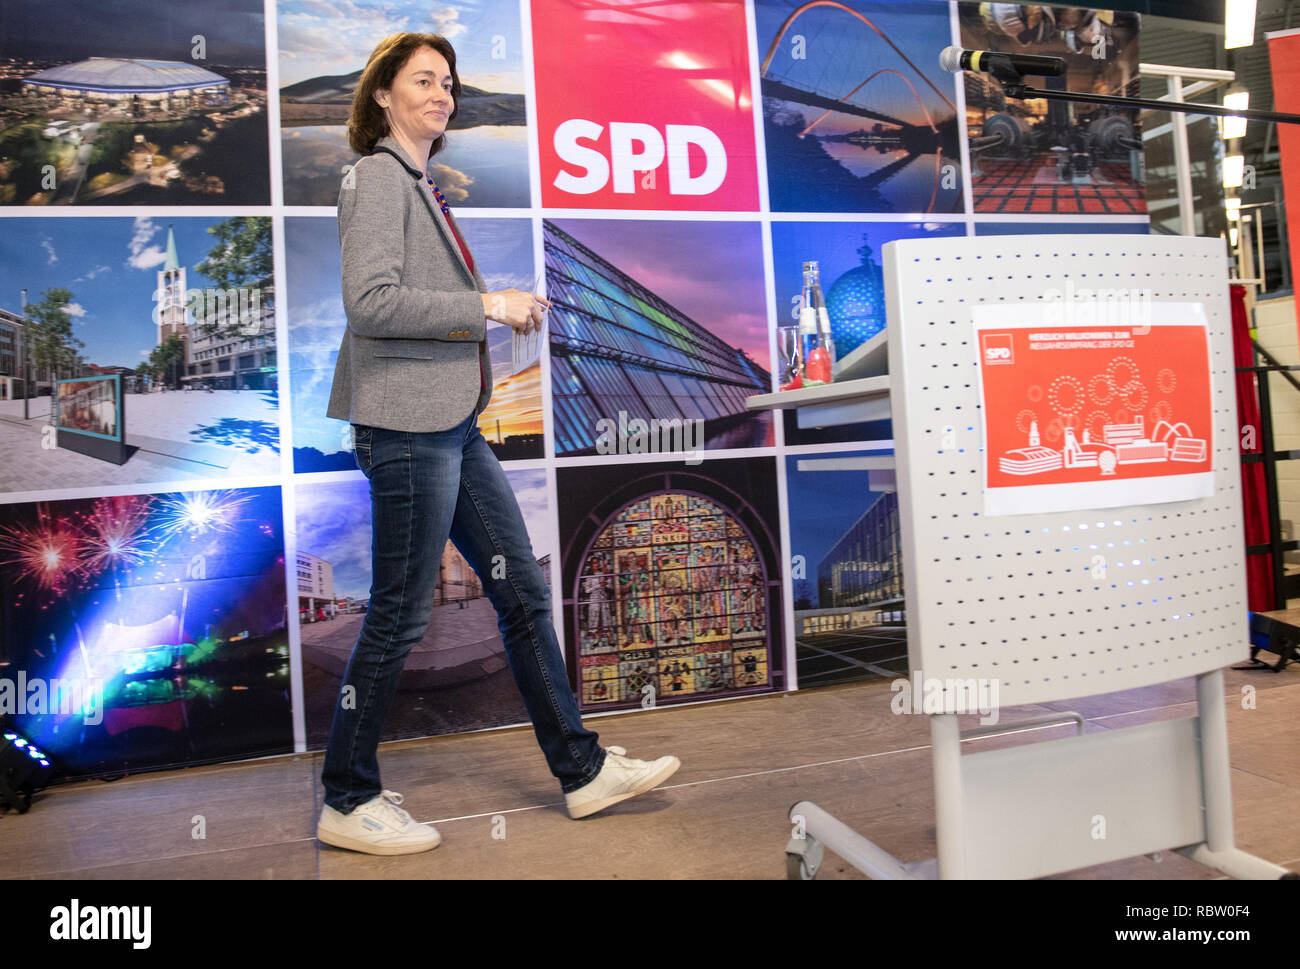 Gelsenkirchen, Germany. 12th Jan, 2019. Katarina Barley, Federal Minister of Justice and top candidate for the European elections, will go to the New Year's reception of the SPD Gelsenkirchen with Sneekers, a gift from the Jusos, and in jeans to the podium. Credit: Bernd Thissen/dpa/Alamy Live News - Stock Image